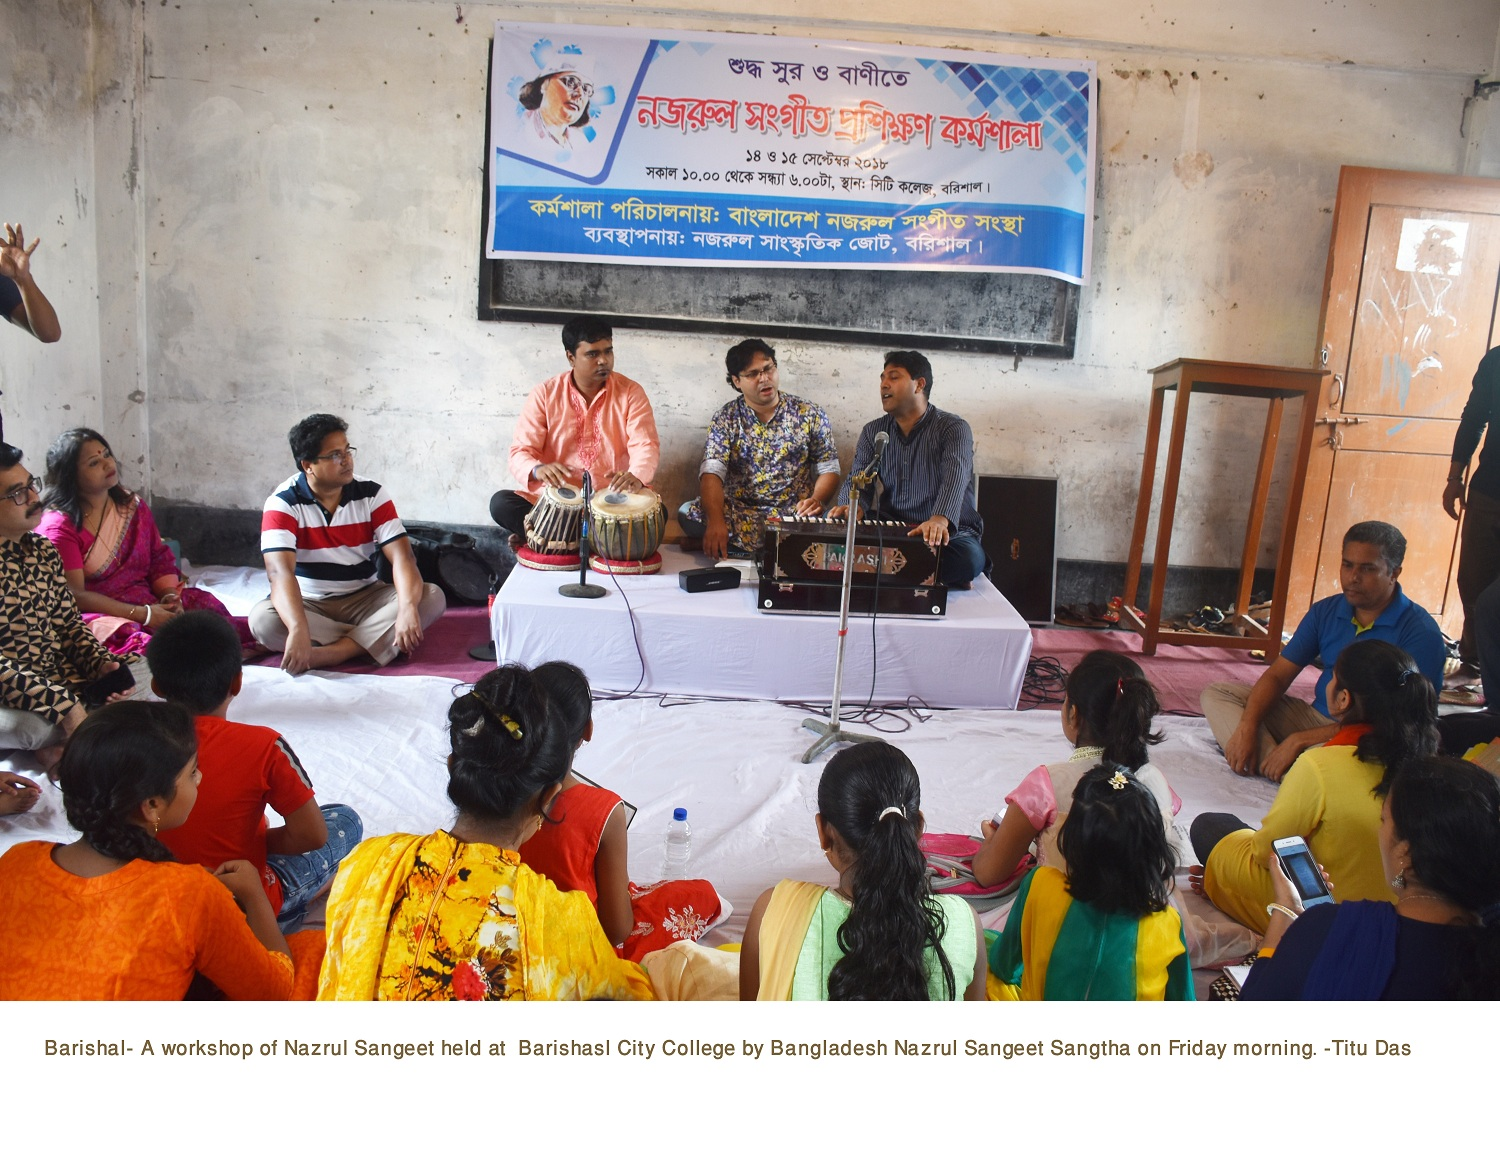 Two-day Nazrul Sangeet workshop begins at Barishal